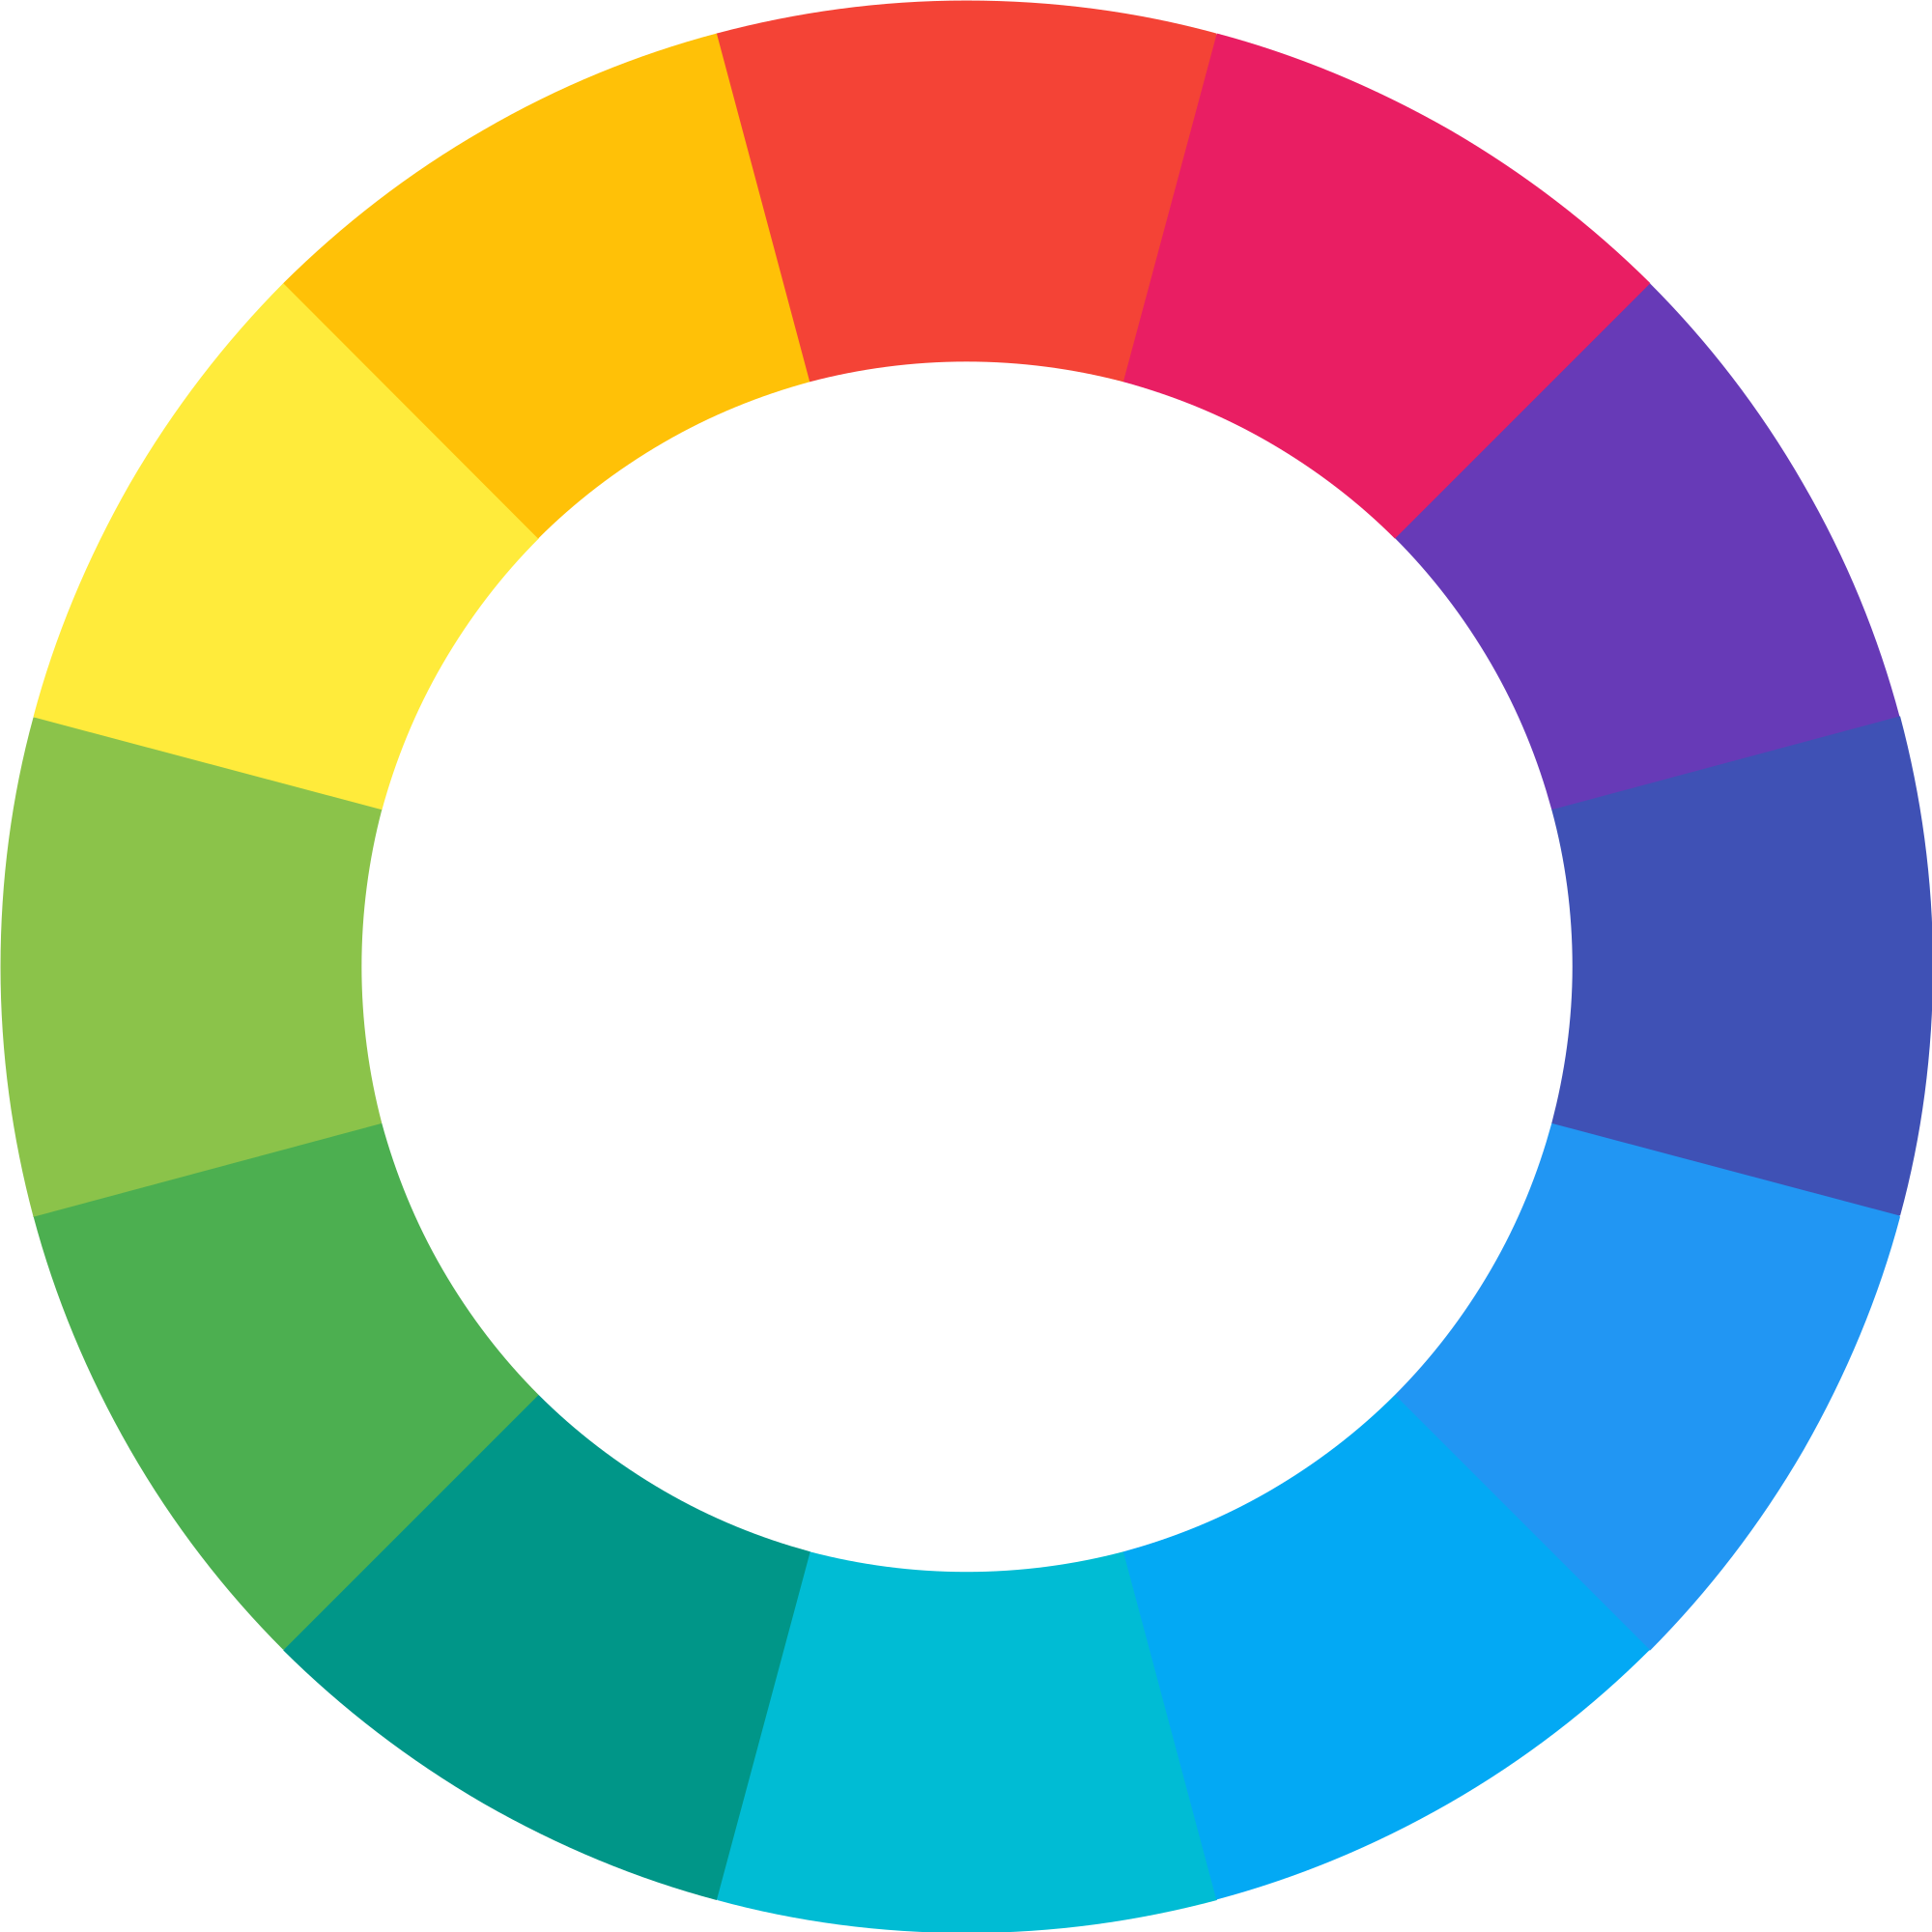 Color circle png. How can i make